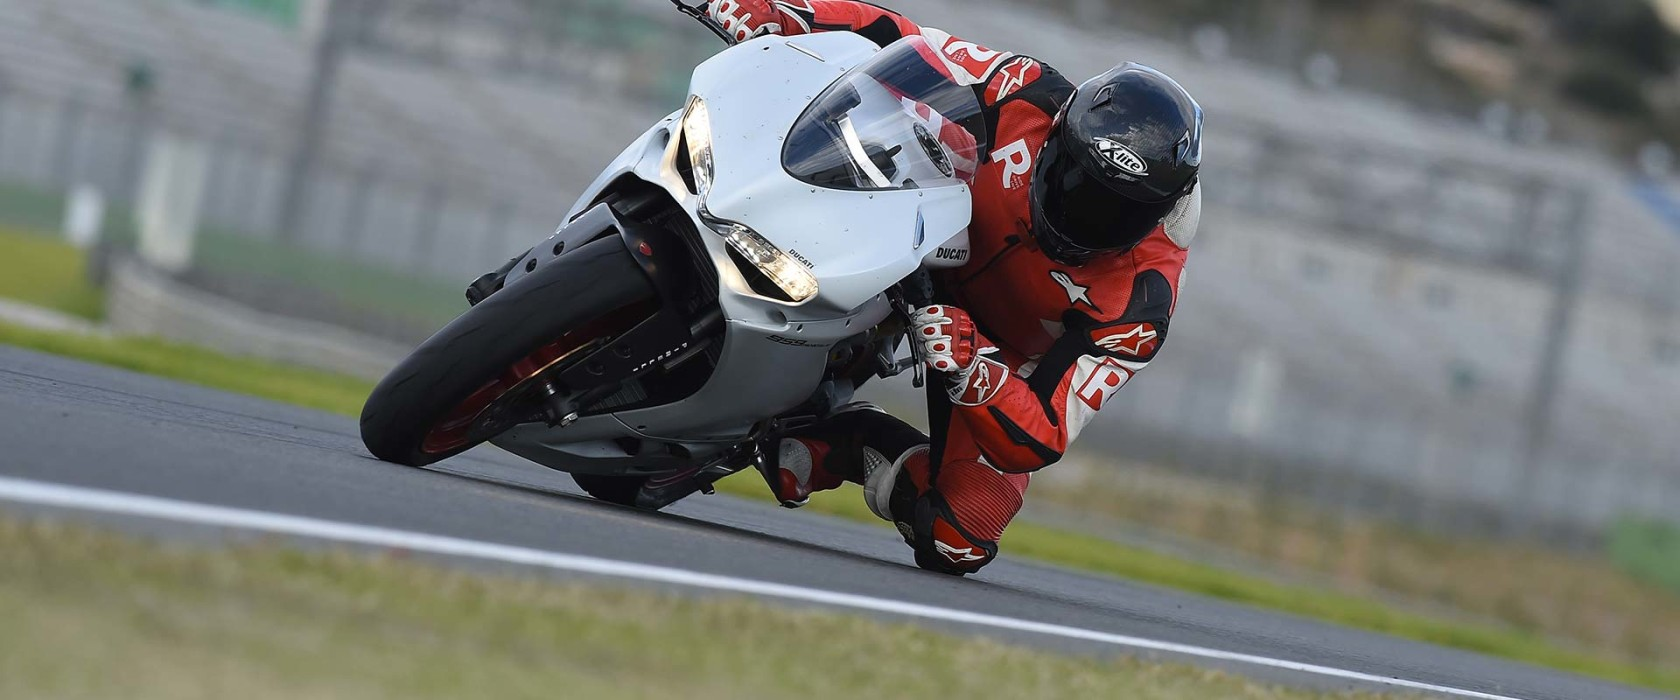 Ducati959PanigaleCover